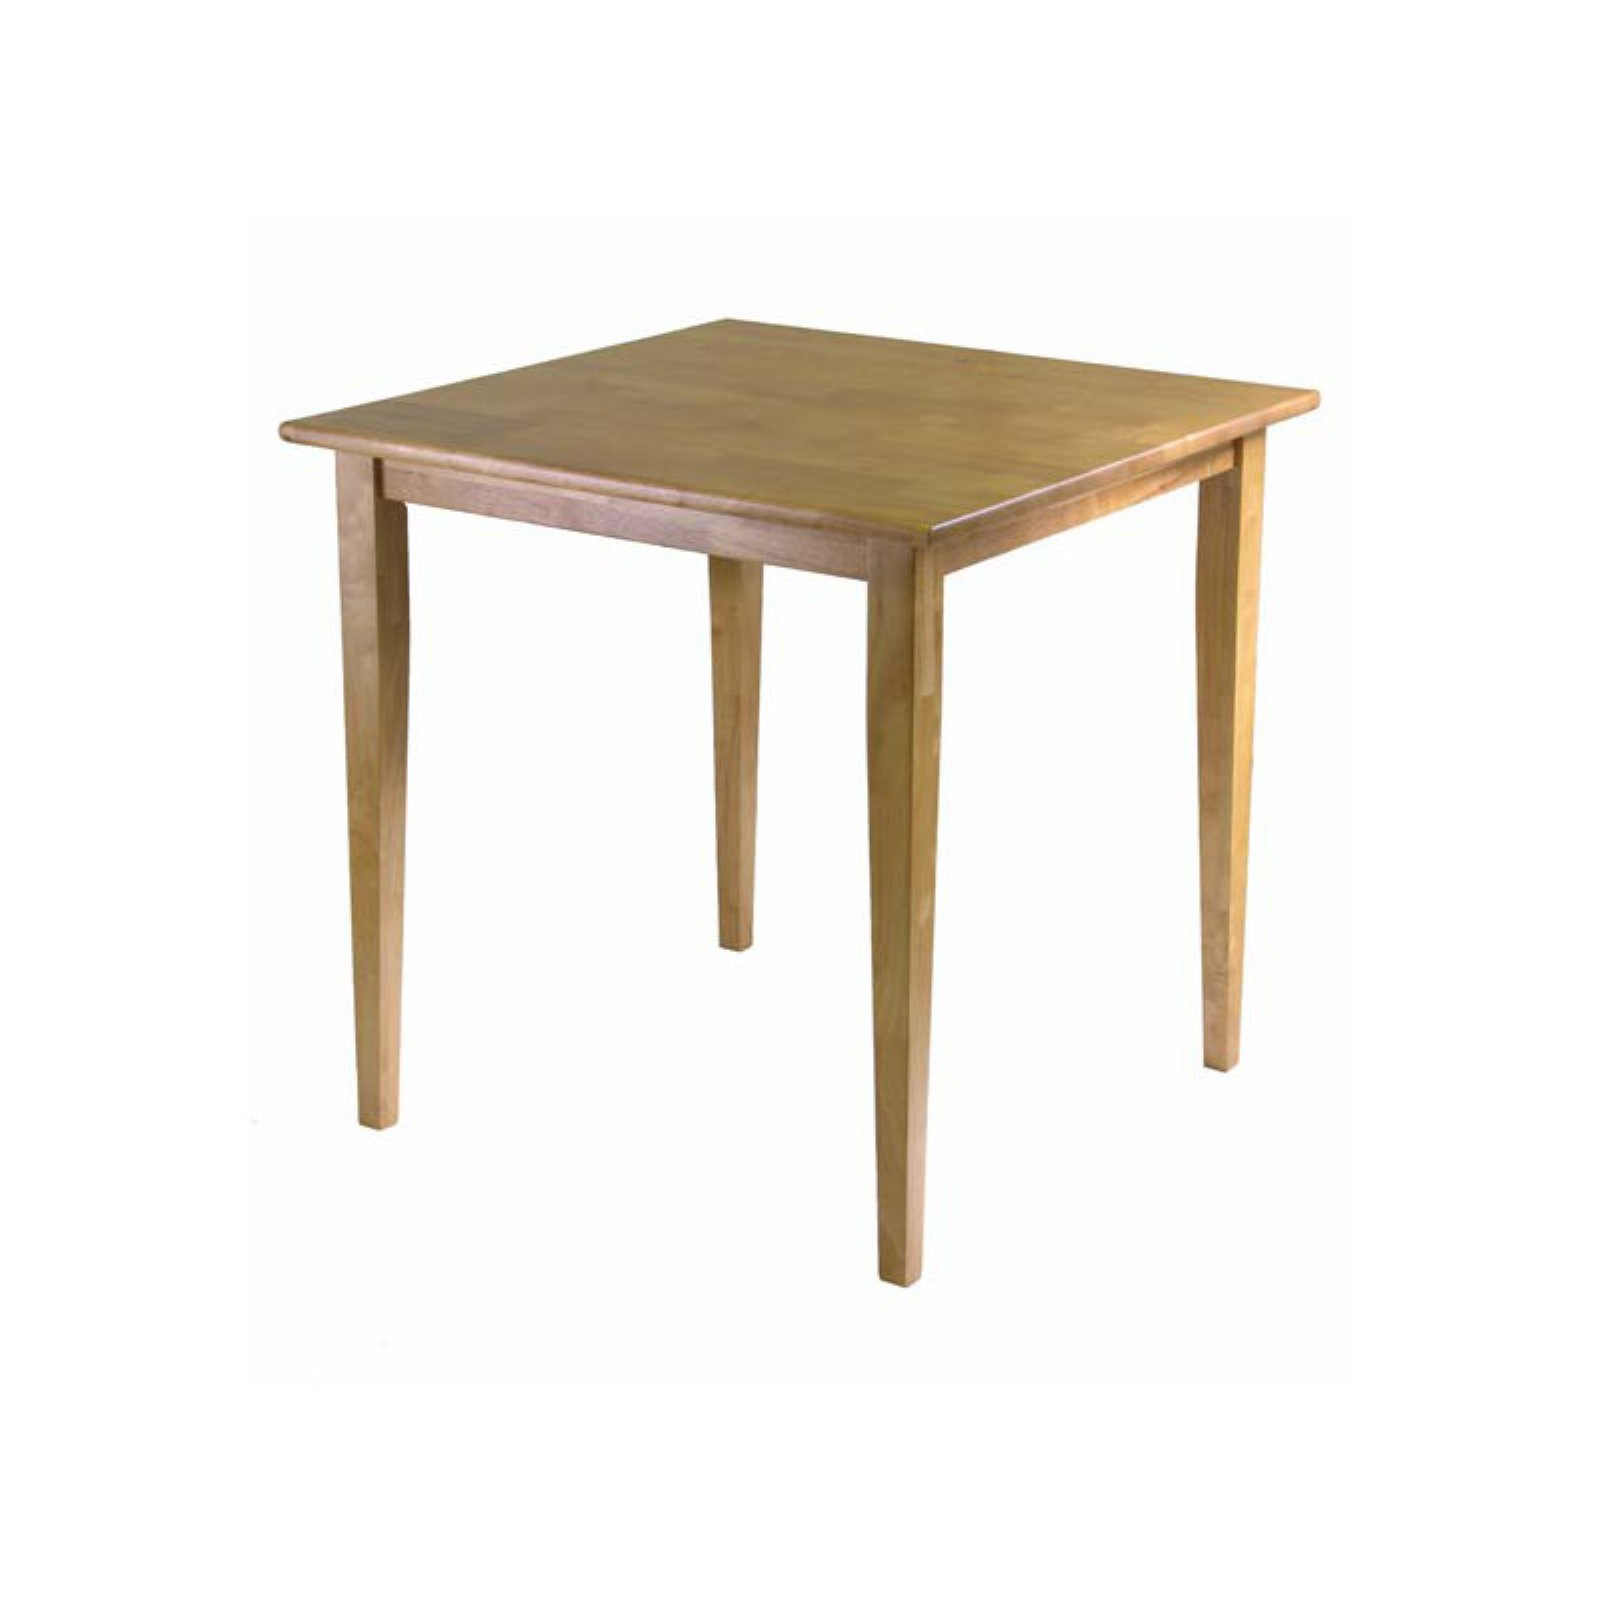 Attrayant Winsome Wood Groveland Square Dining Table, Walnut Finish